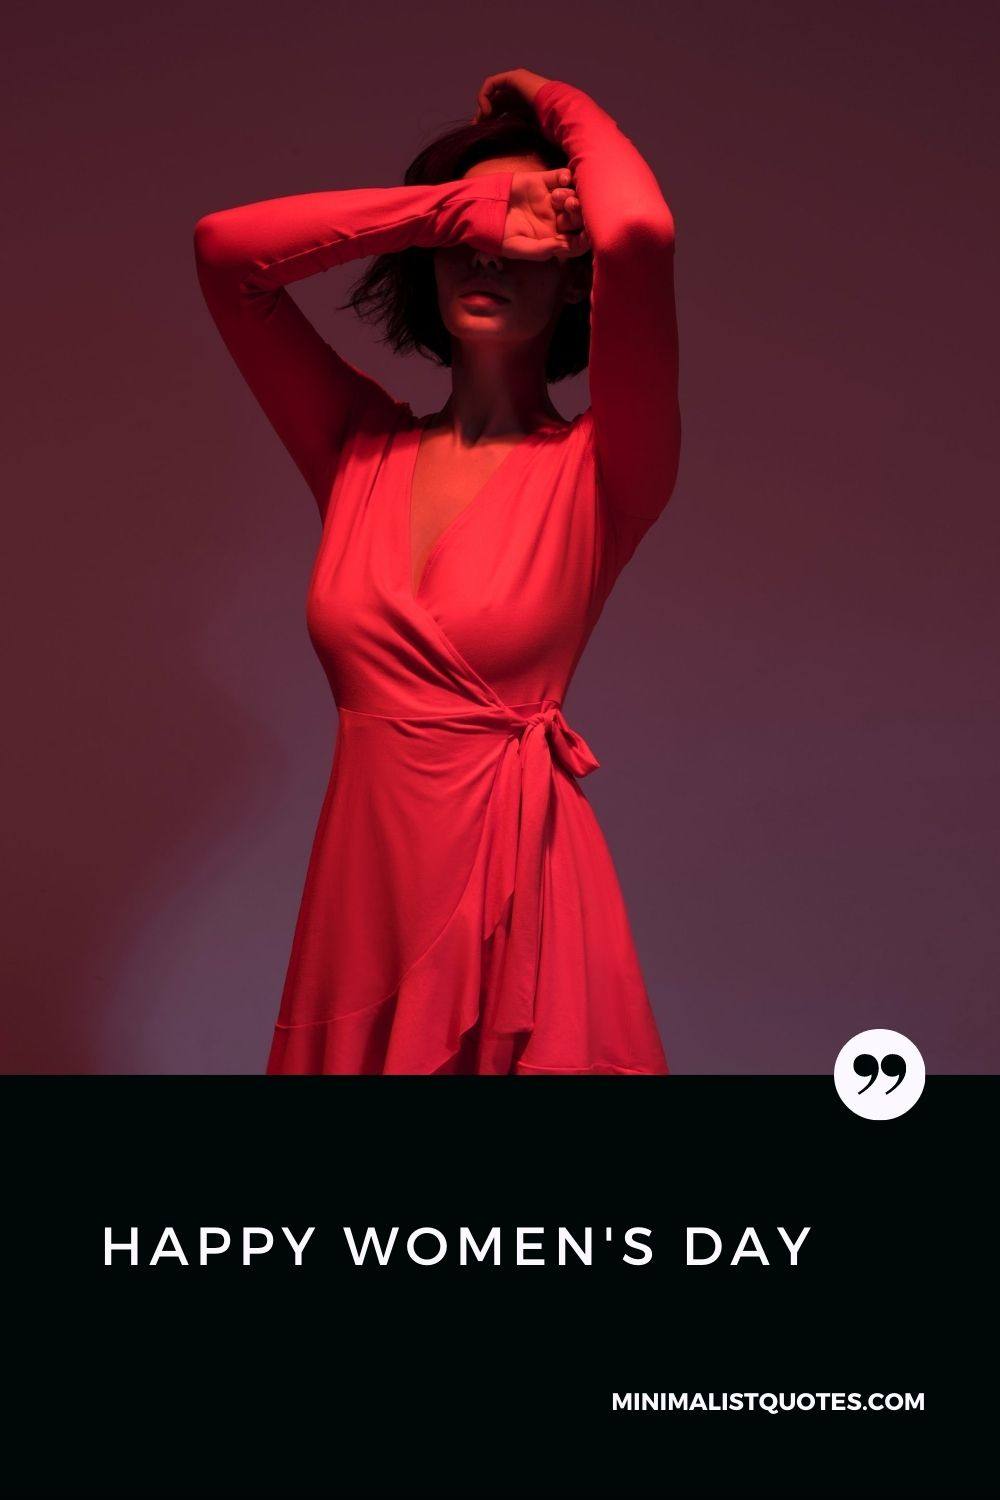 Women's Day Wish & Message With Images: Fashion